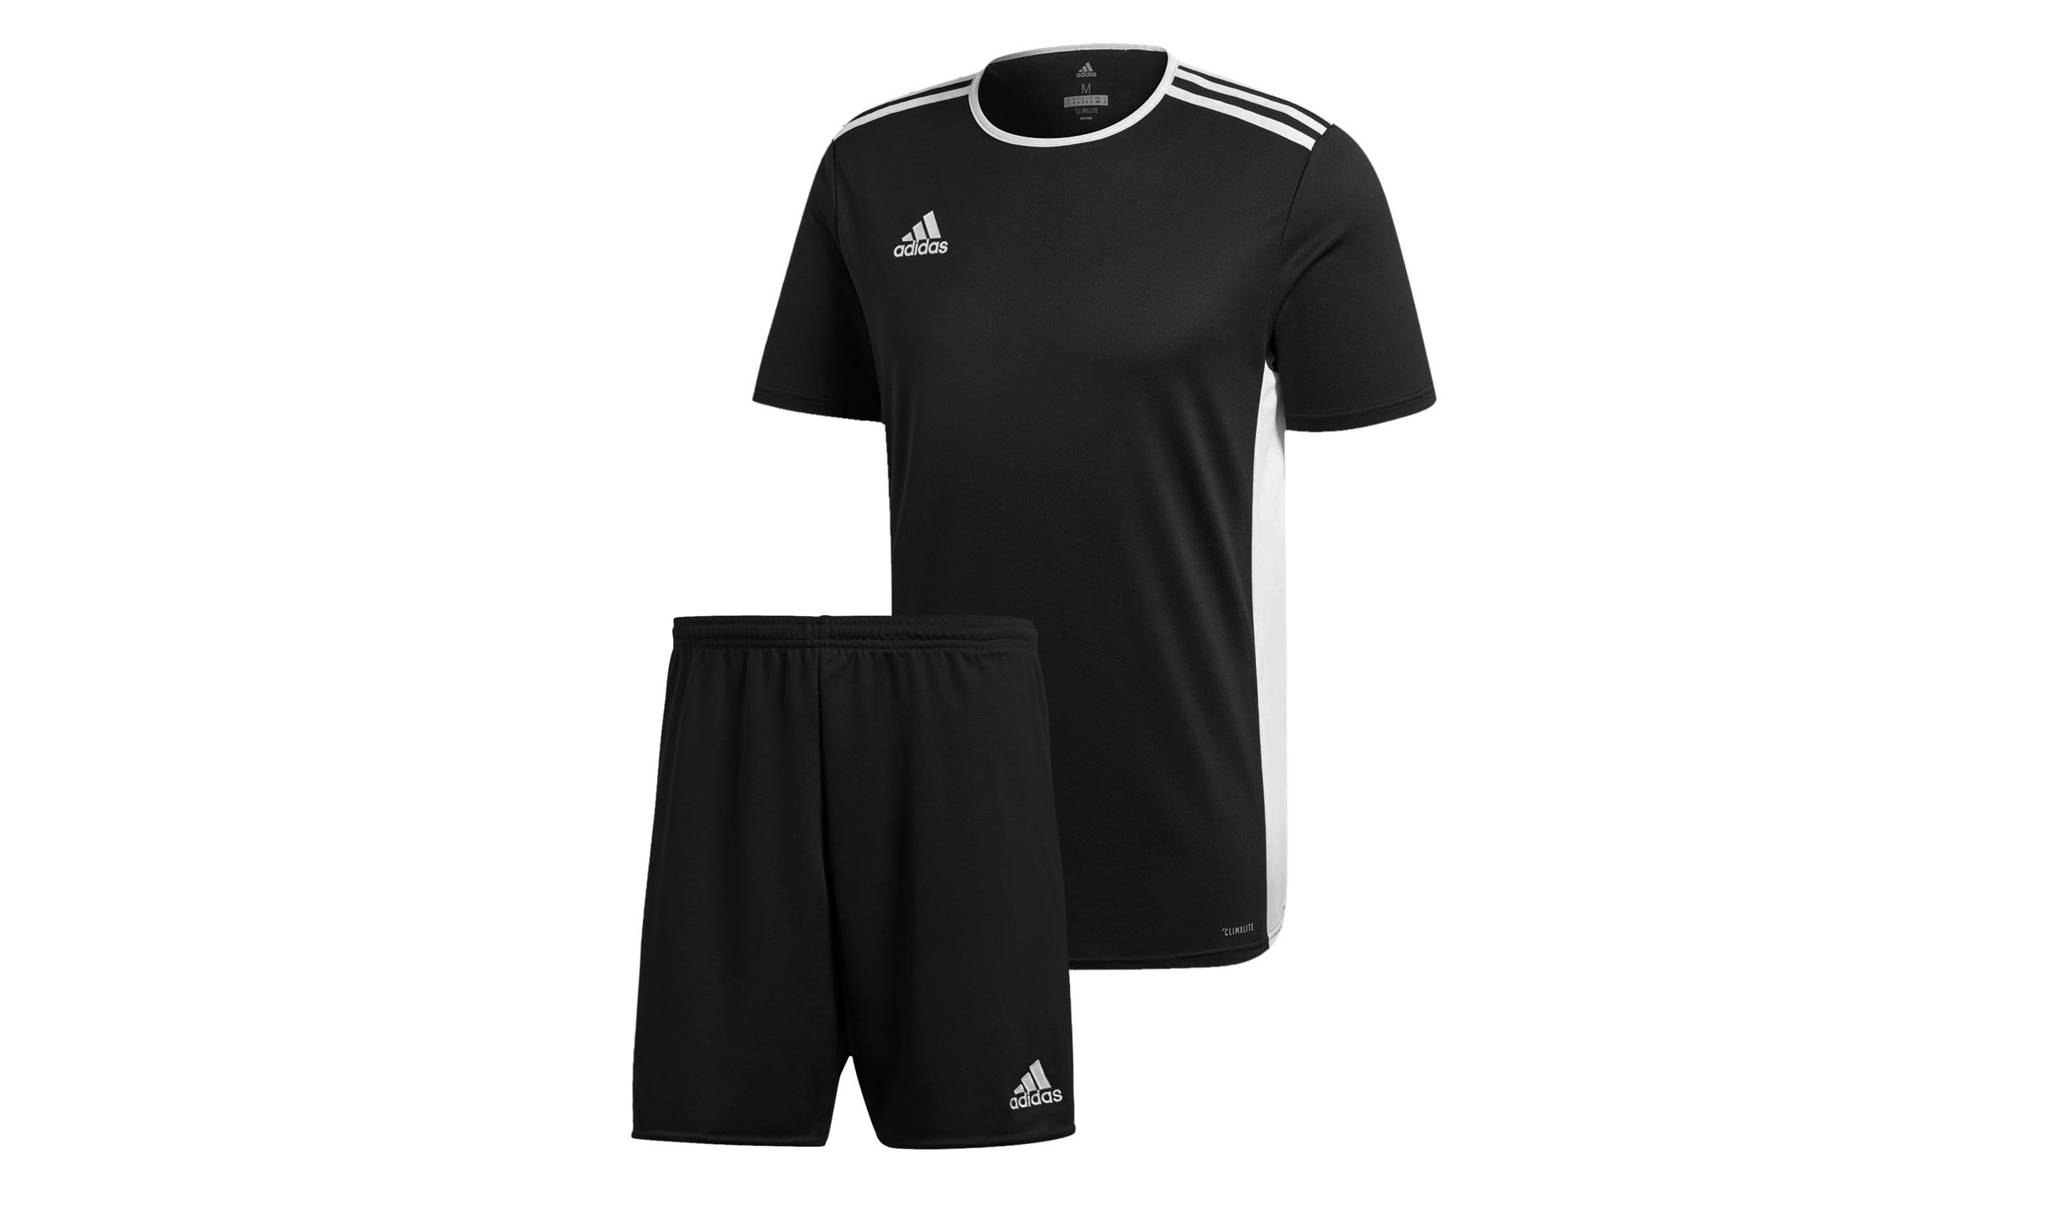 26.98 Men's Adidas T-Shirt and Shorts: Black T-Shirt and Black Shorts/Size L